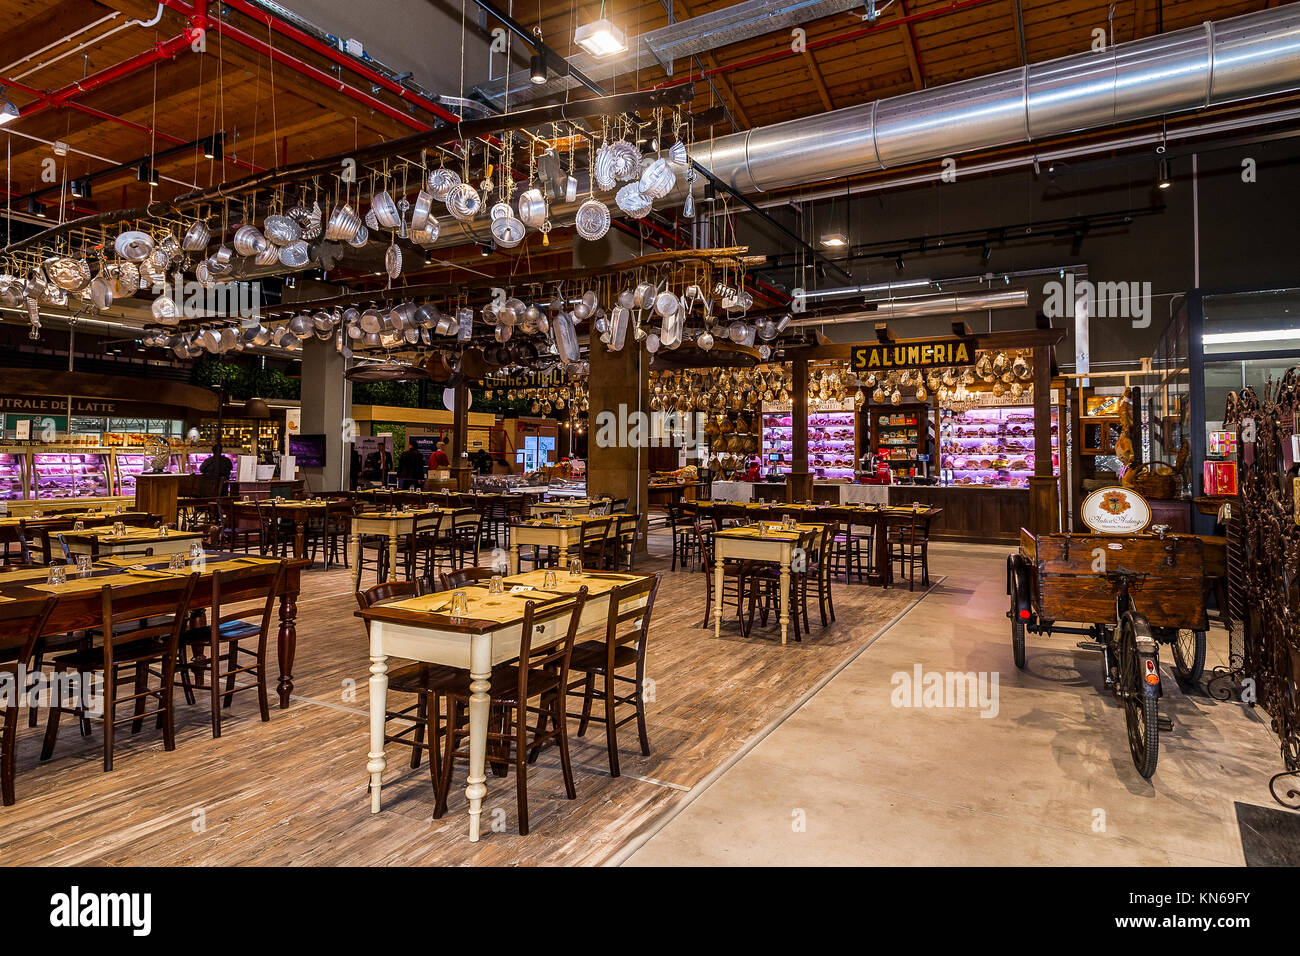 Eataly Food Store Stock Photos & Eataly Food Store Stock Images - Alamy